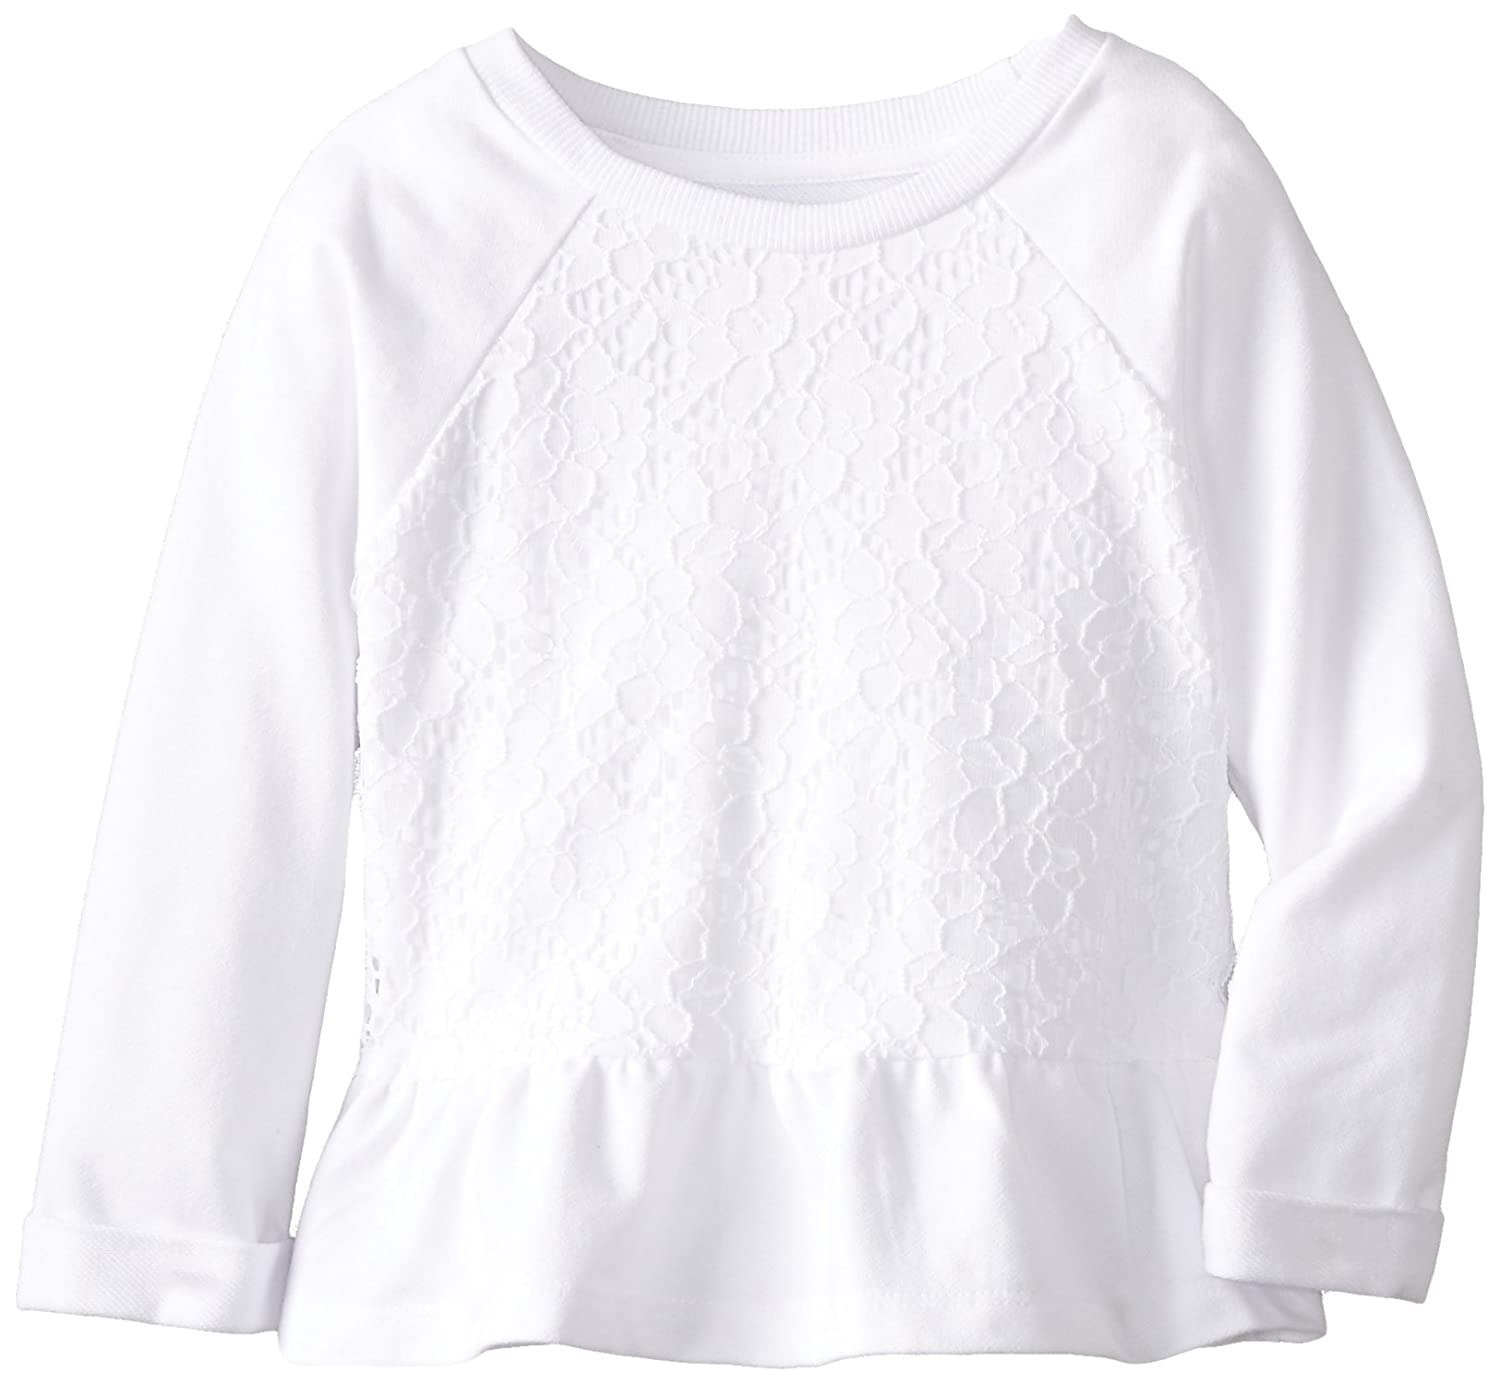 The Children's Place Little Girls' Lace Peplum Top